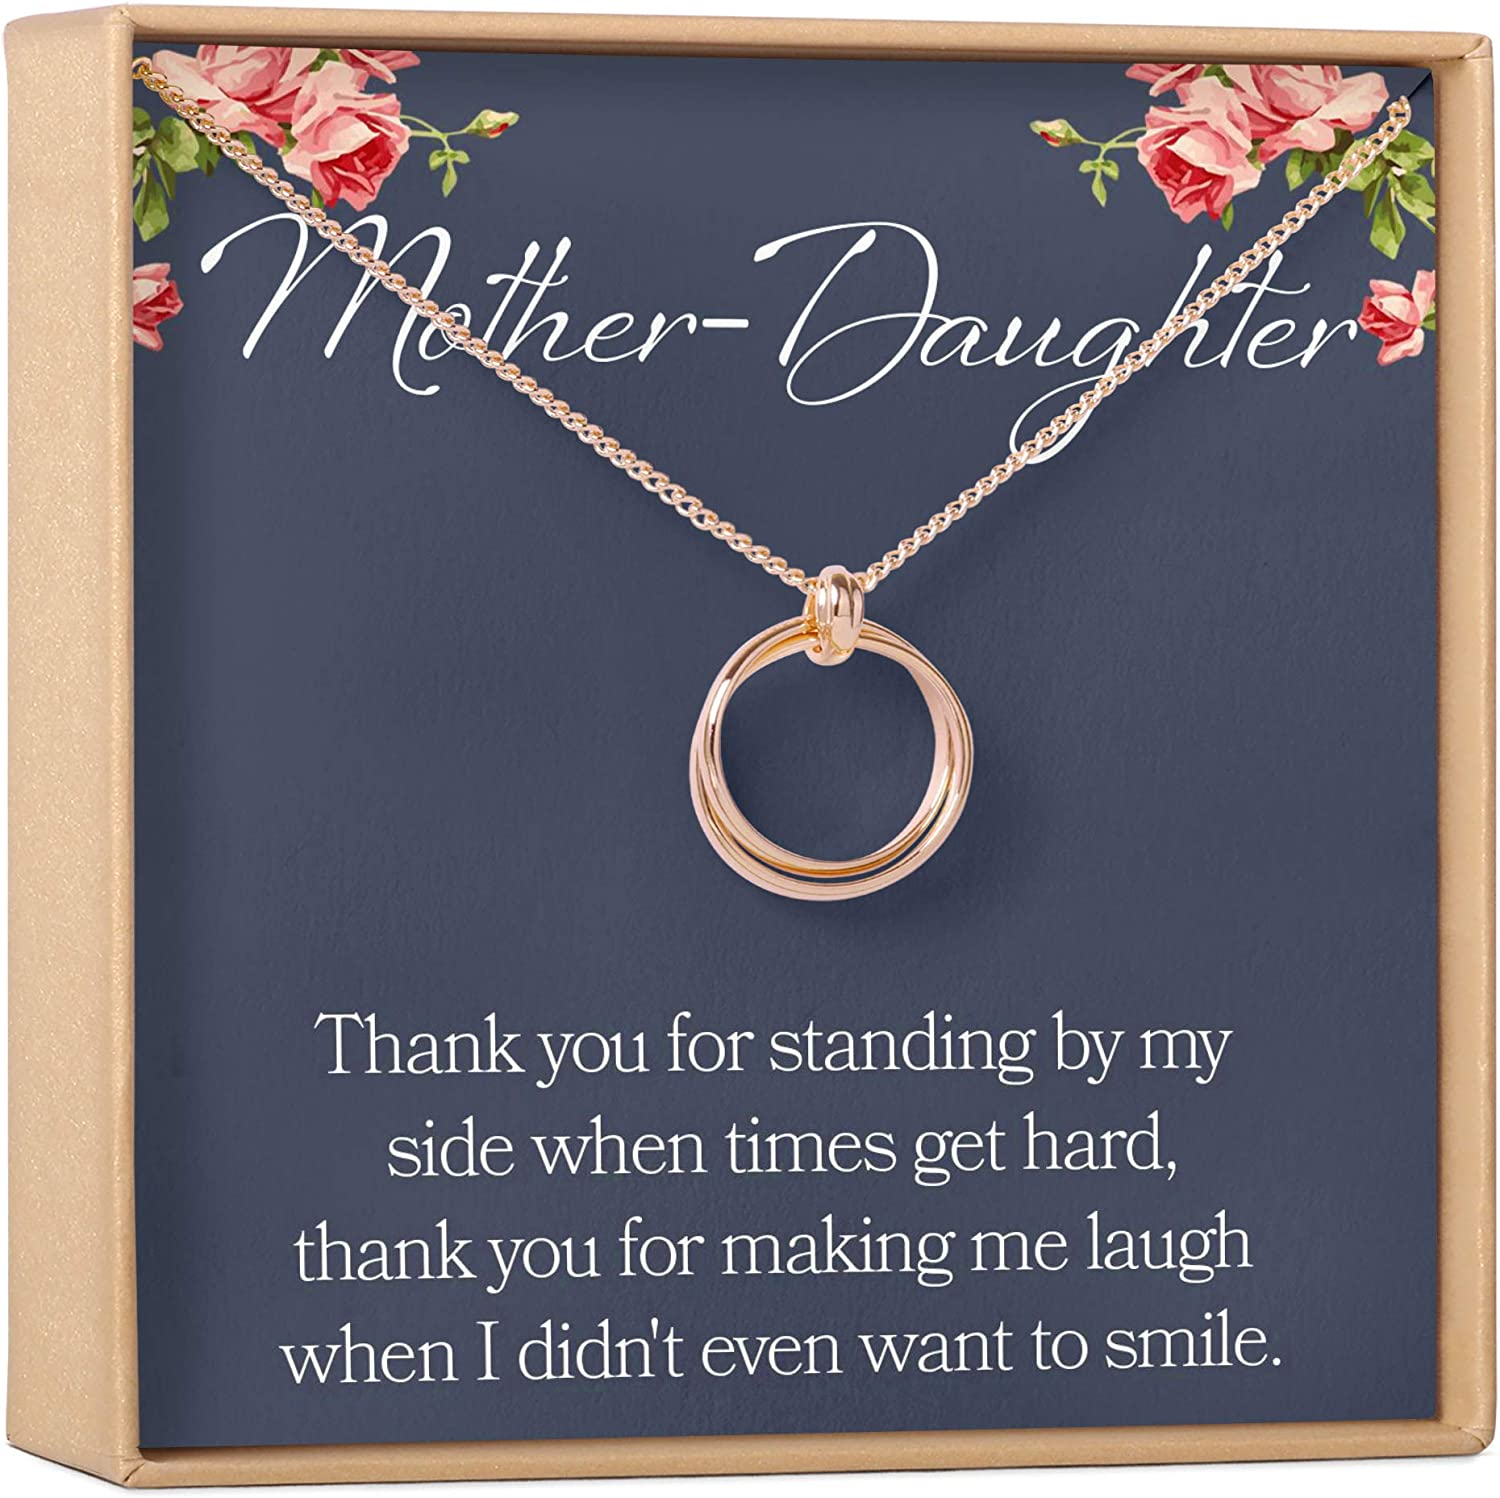 Mother\u2019s Day present Mother\u2019s Day gift-Heart necklace-Rose gold chain necklace-Red bead and heart necklace